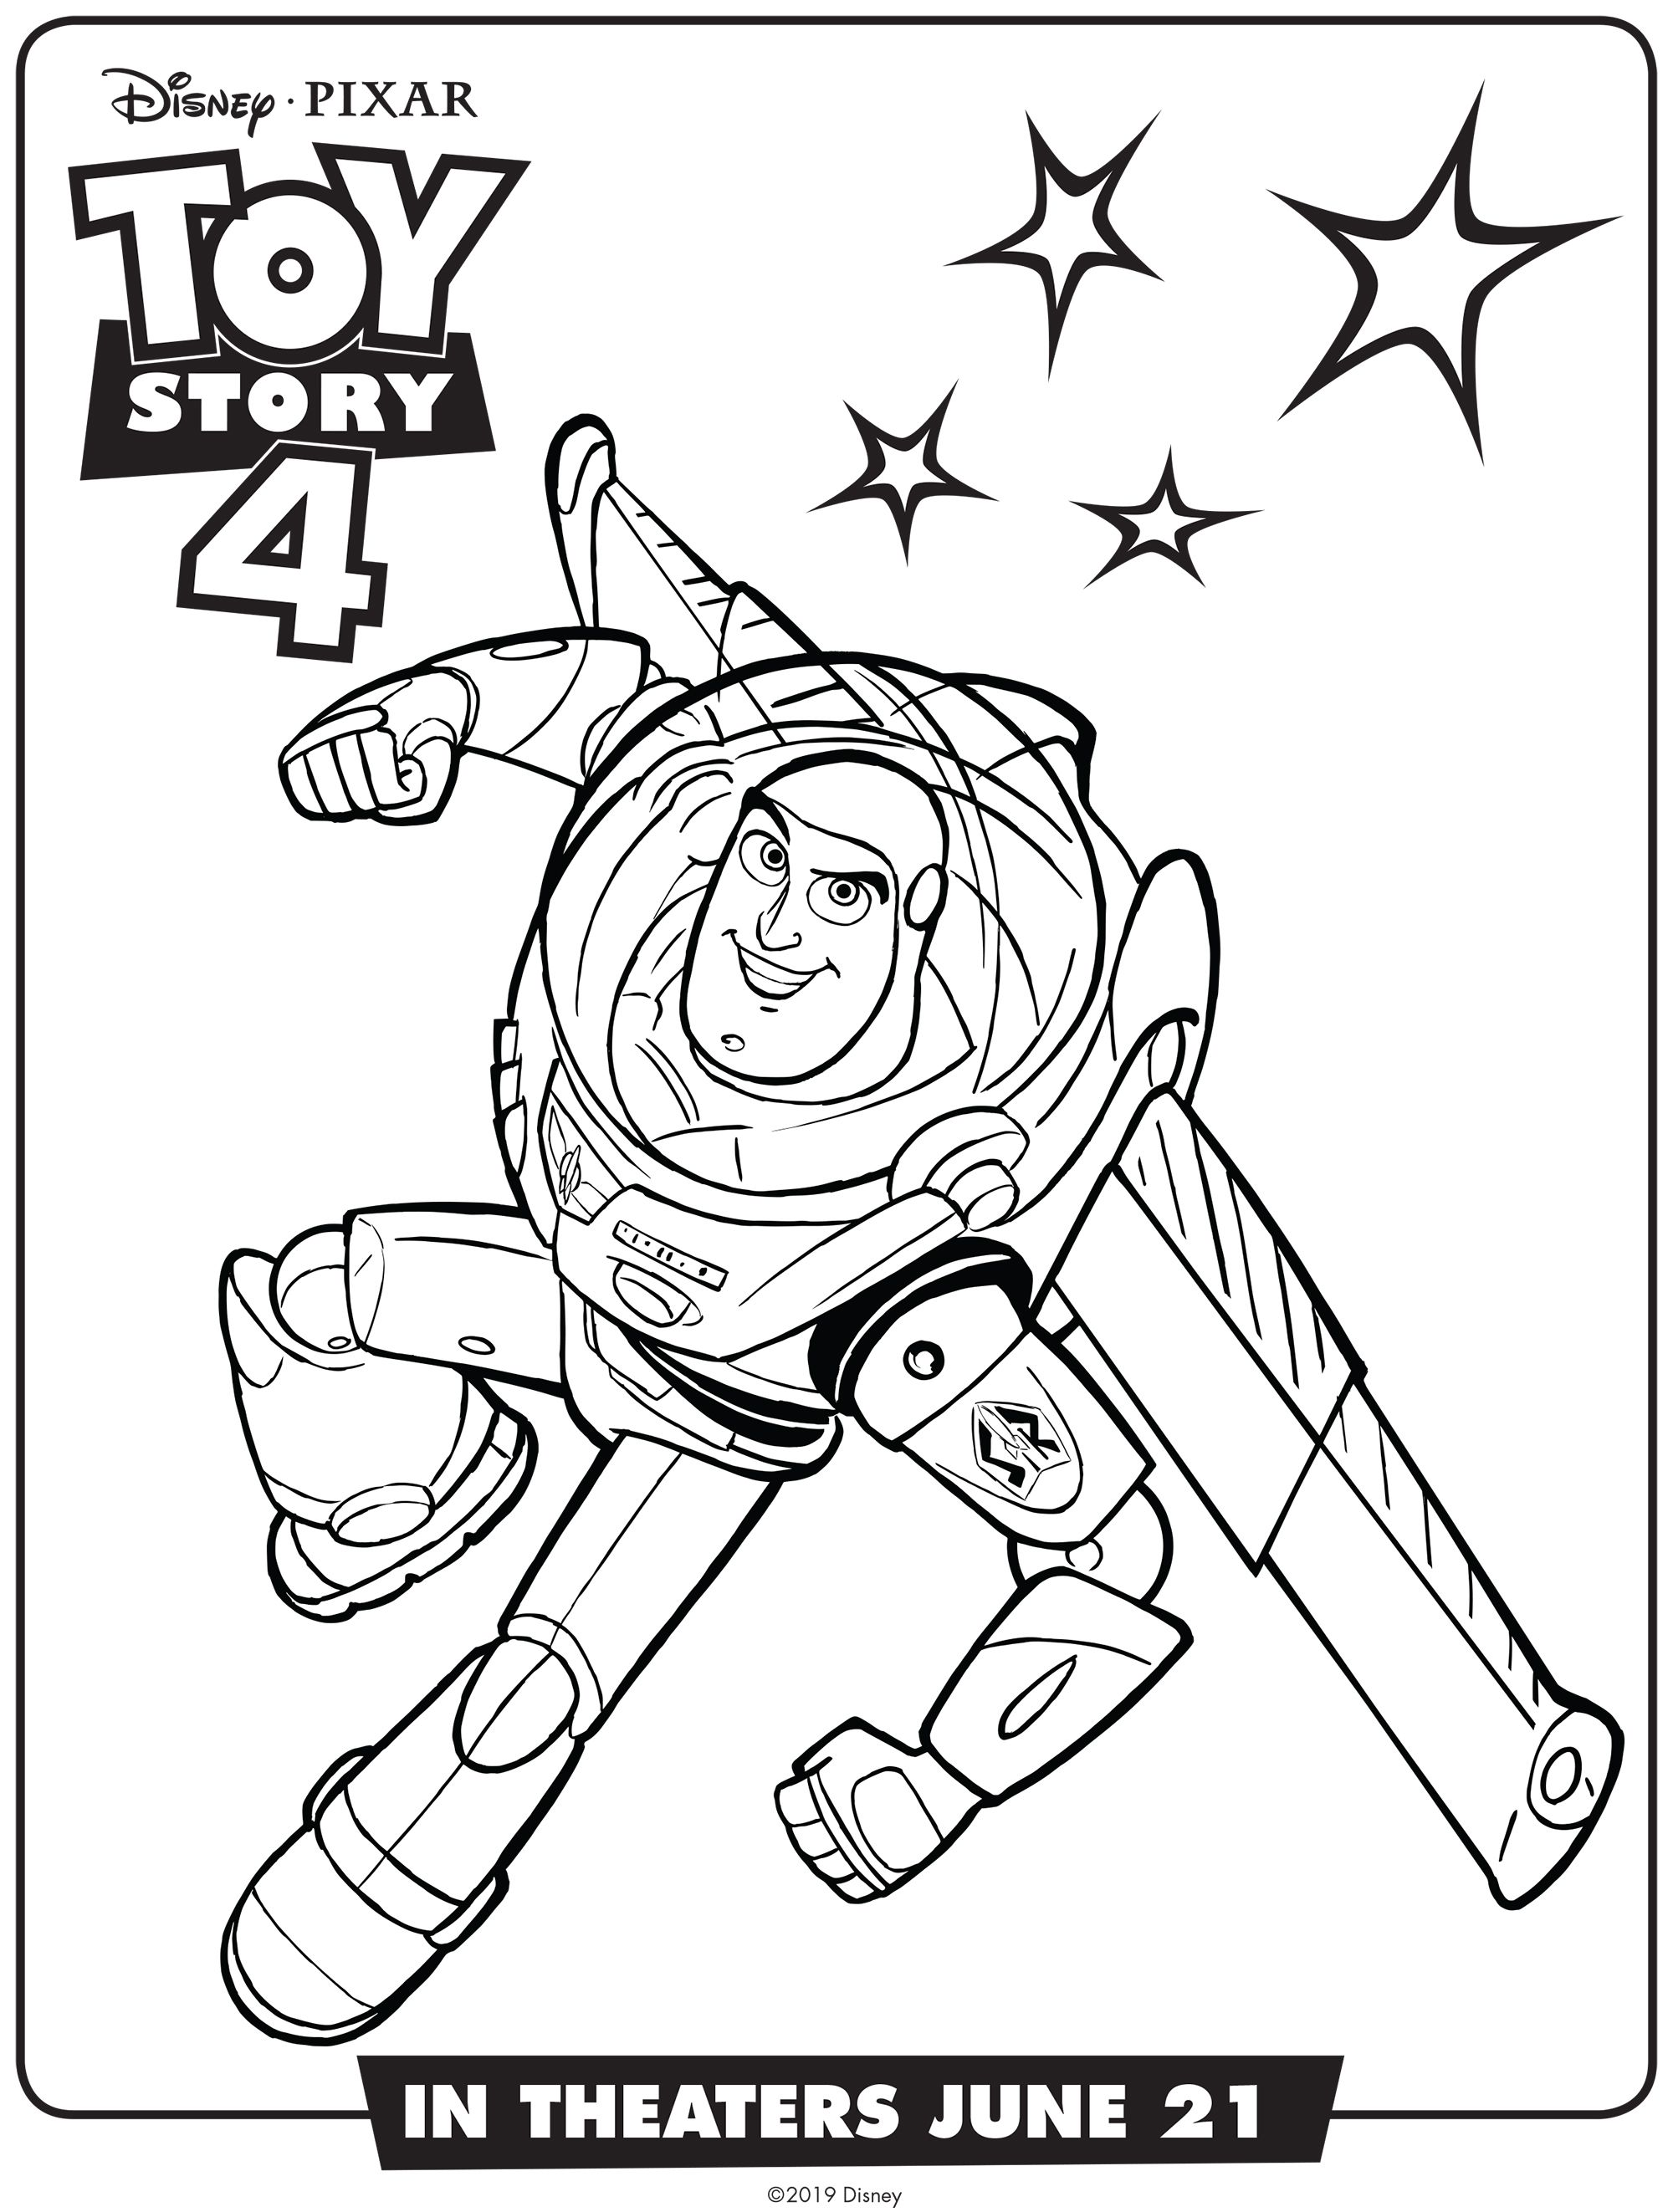 Toy Story 4 Buzz Lightyear Coloring Sheet Toy Story Coloring Pages Disney Coloring Pages Coloring Books